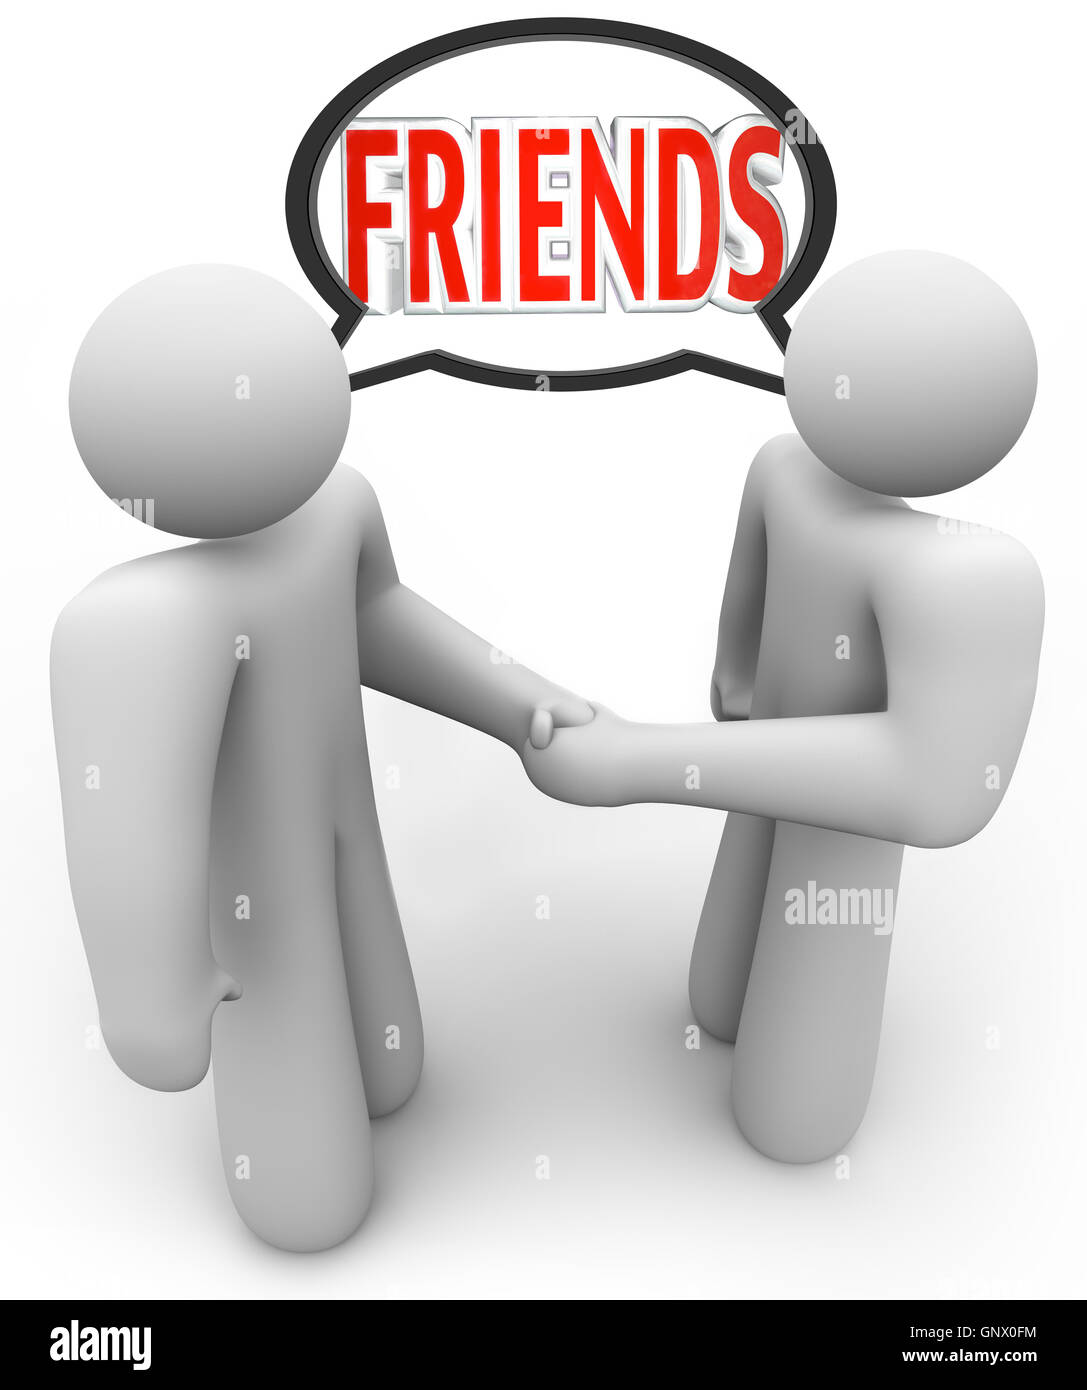 Friends Two People Shaking Hands Friendly Meeting - Stock Image